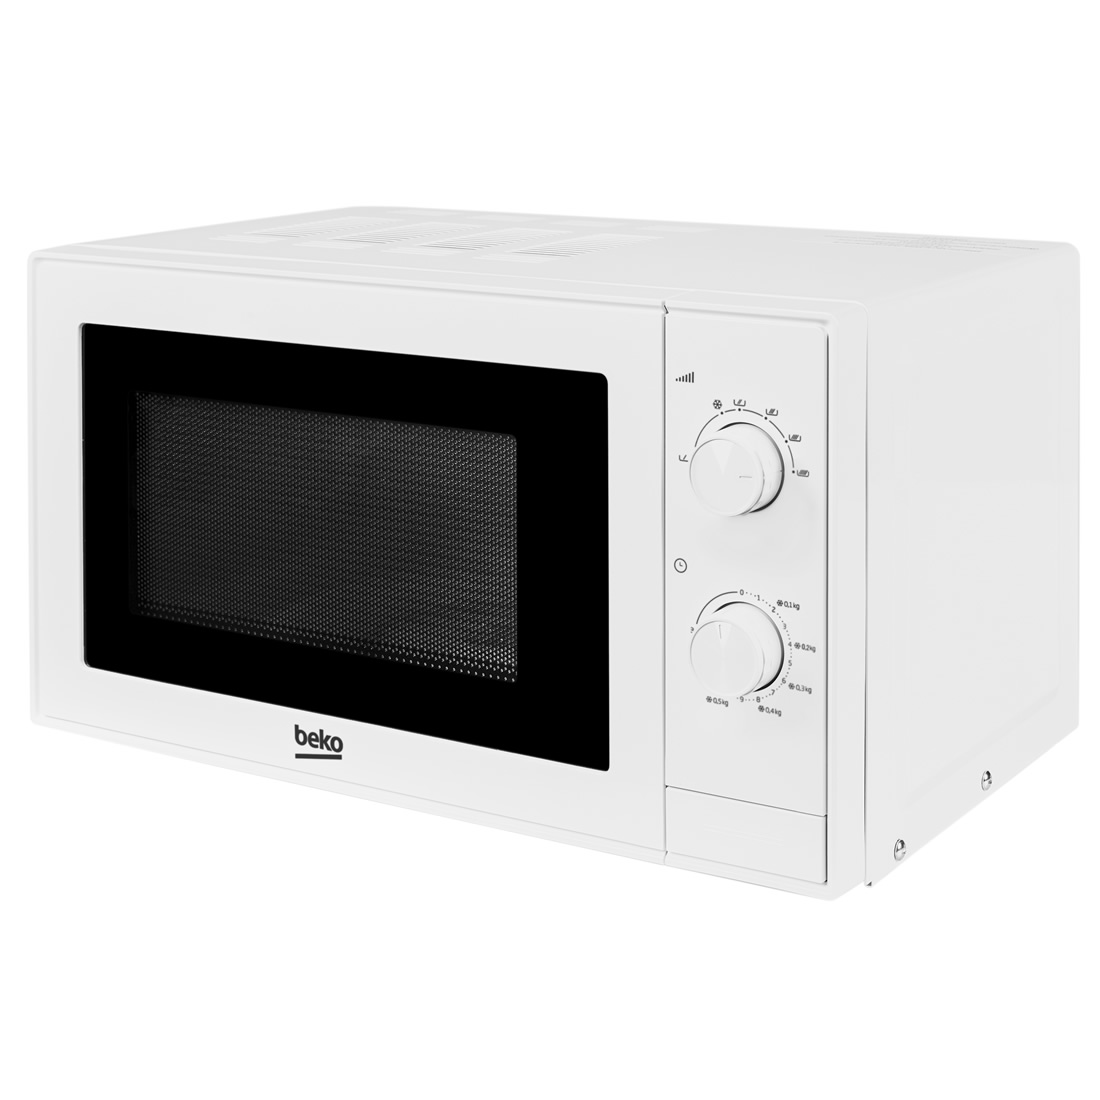 Image of 700Watts Microwave 20Litres White